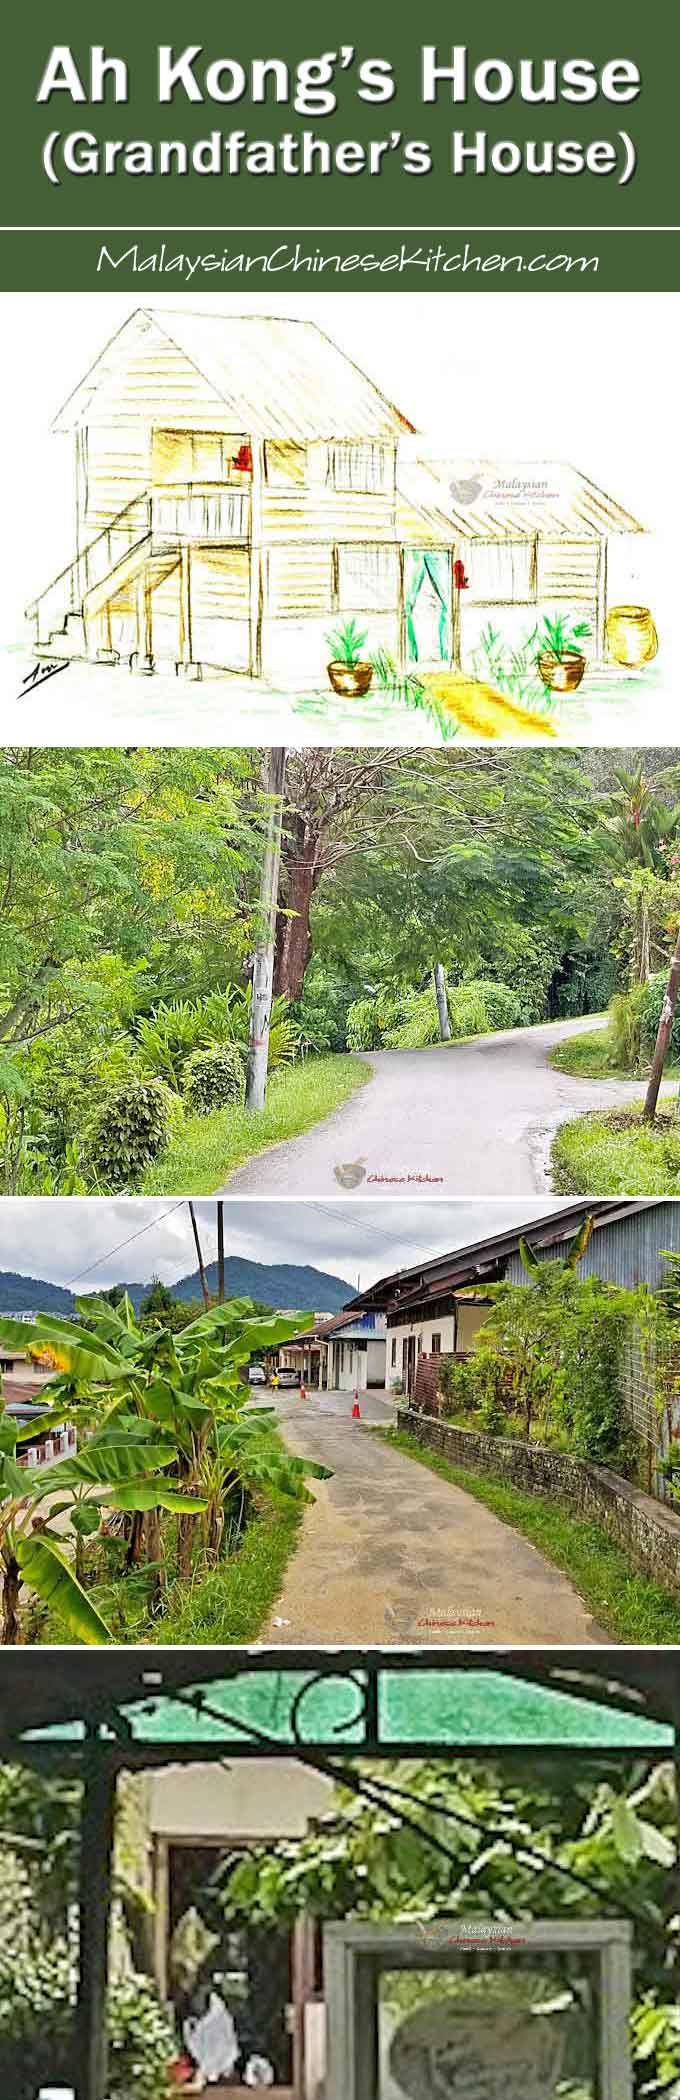 Ah Kong's House (Grandfather's House) - childhood visits to my paternal grandfather's house and Penang's idyllic rural life in the 1970's. | MalaysianChineseKitchen.com